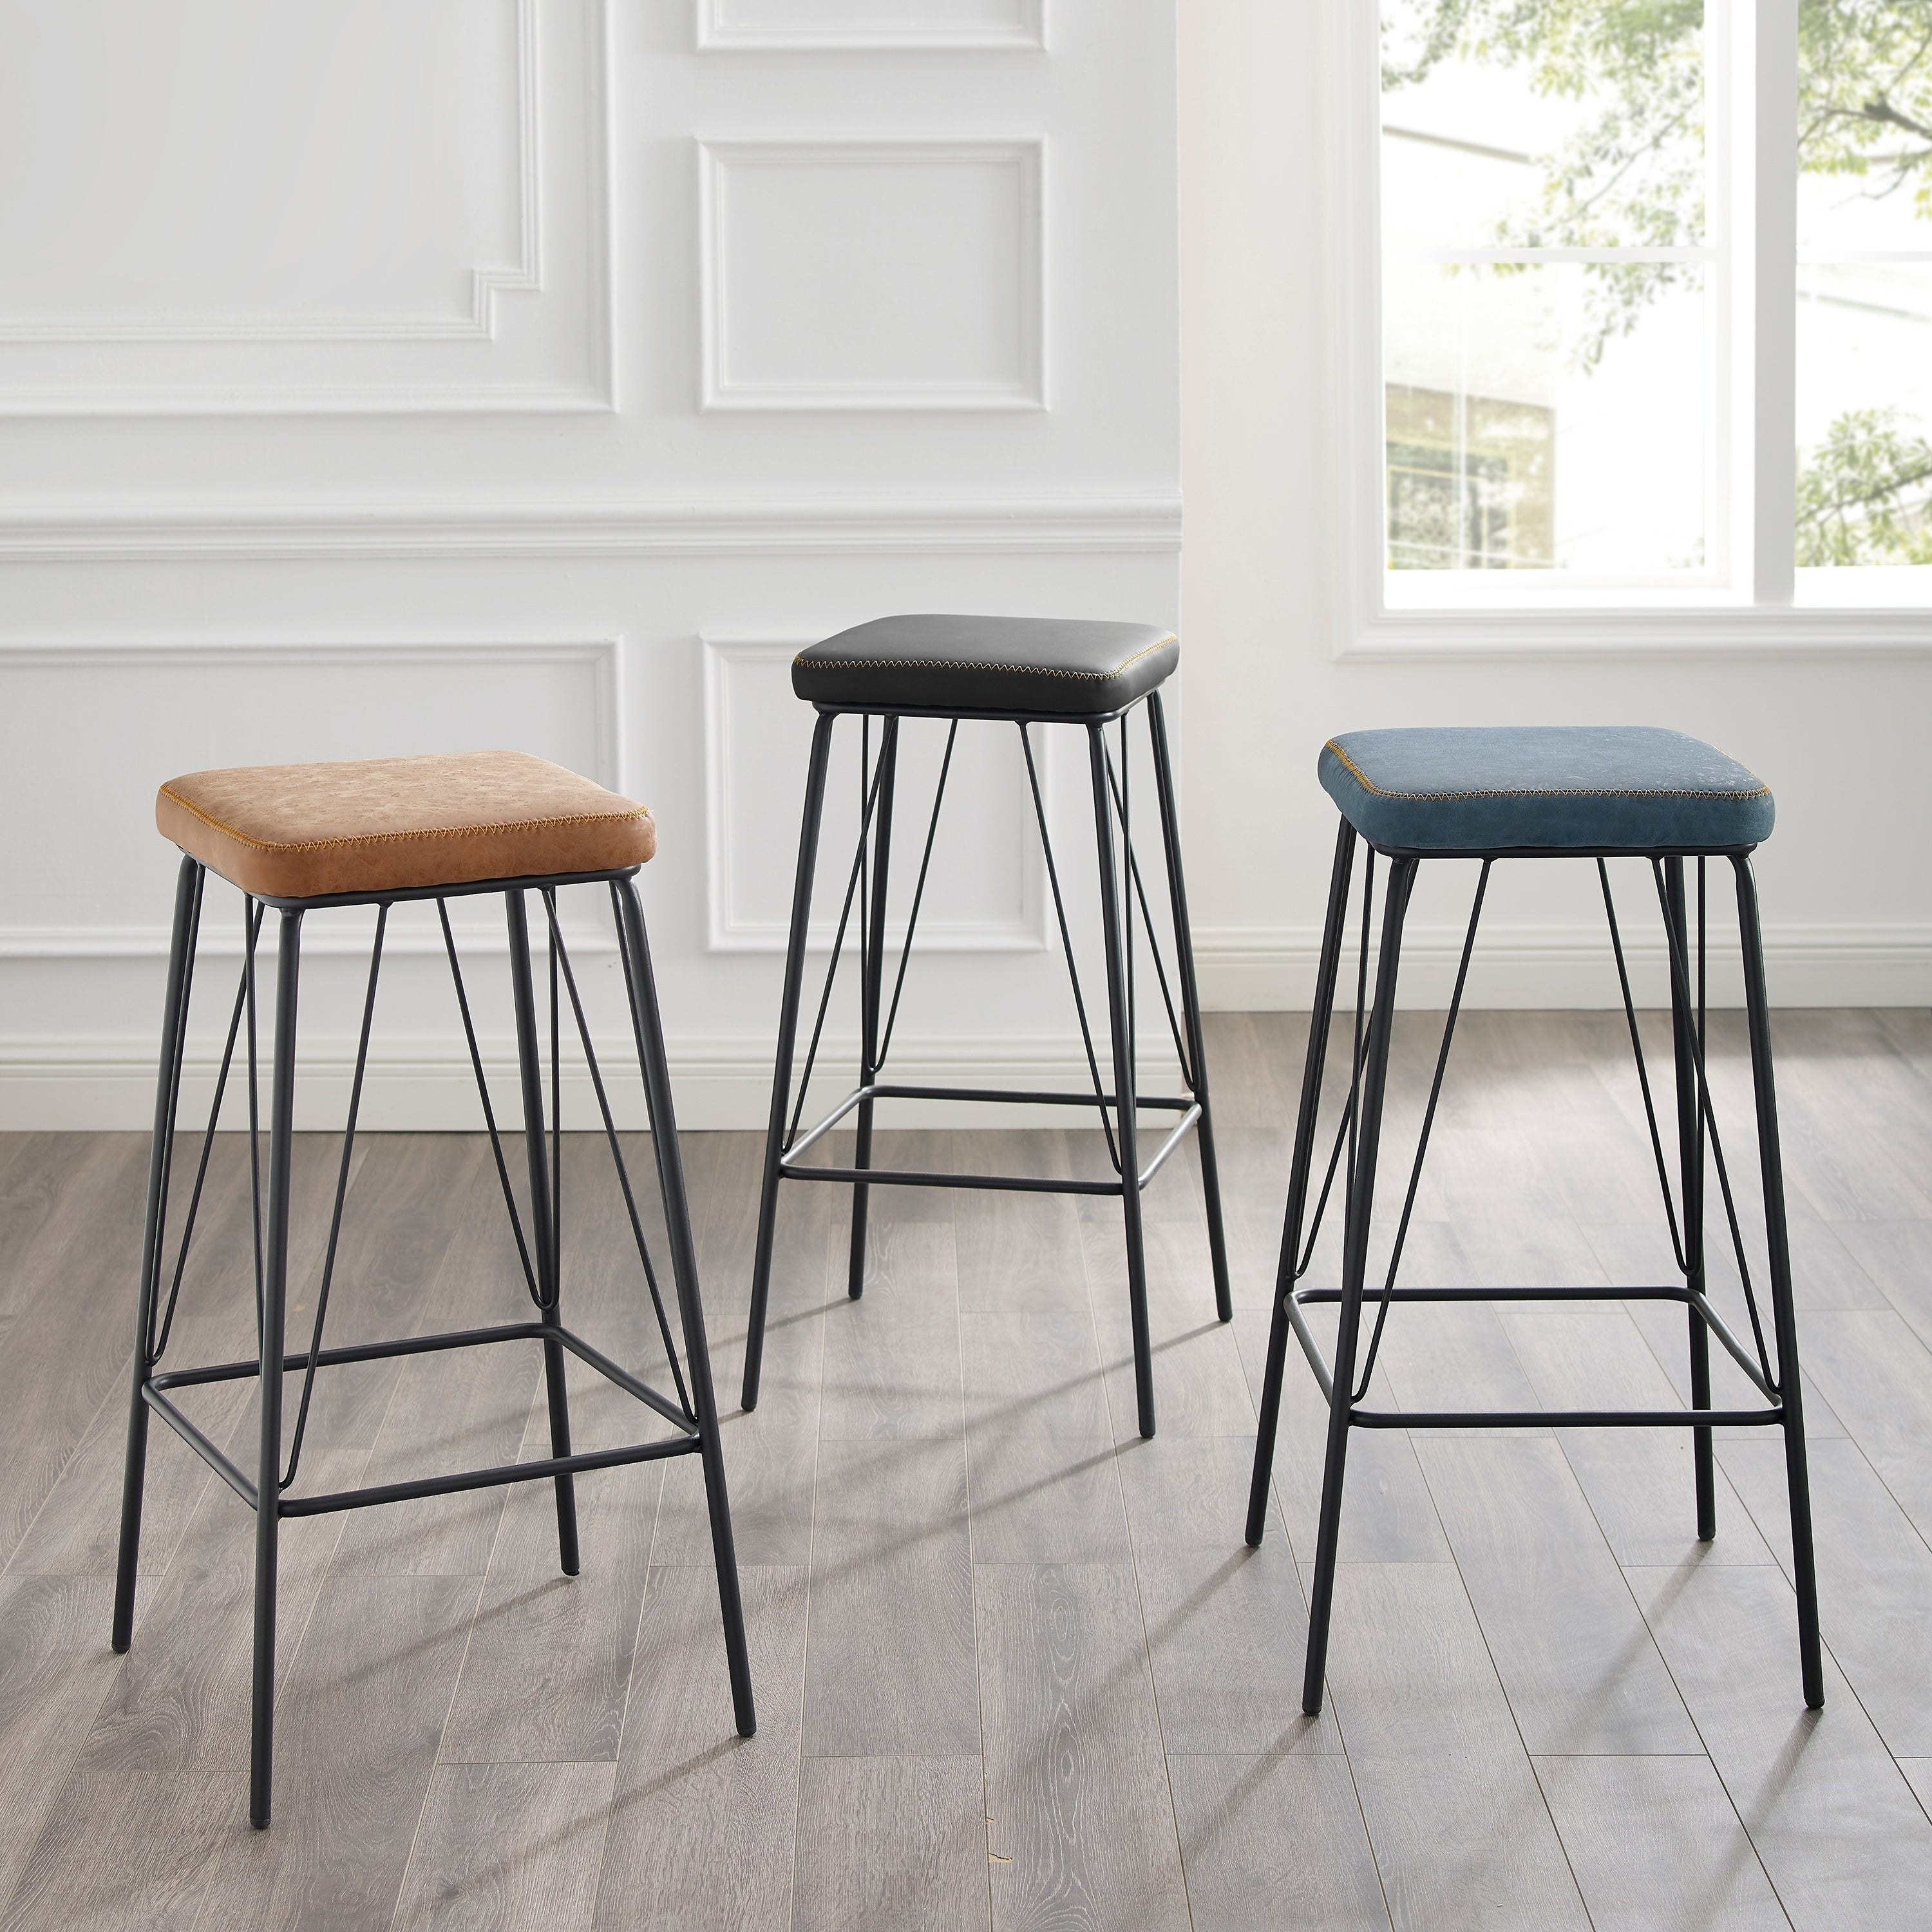 Pleasing Moa 30 Inch Faux Leather Backless Counter Bar Stool By Corvus Set Of 2 Gmtry Best Dining Table And Chair Ideas Images Gmtryco